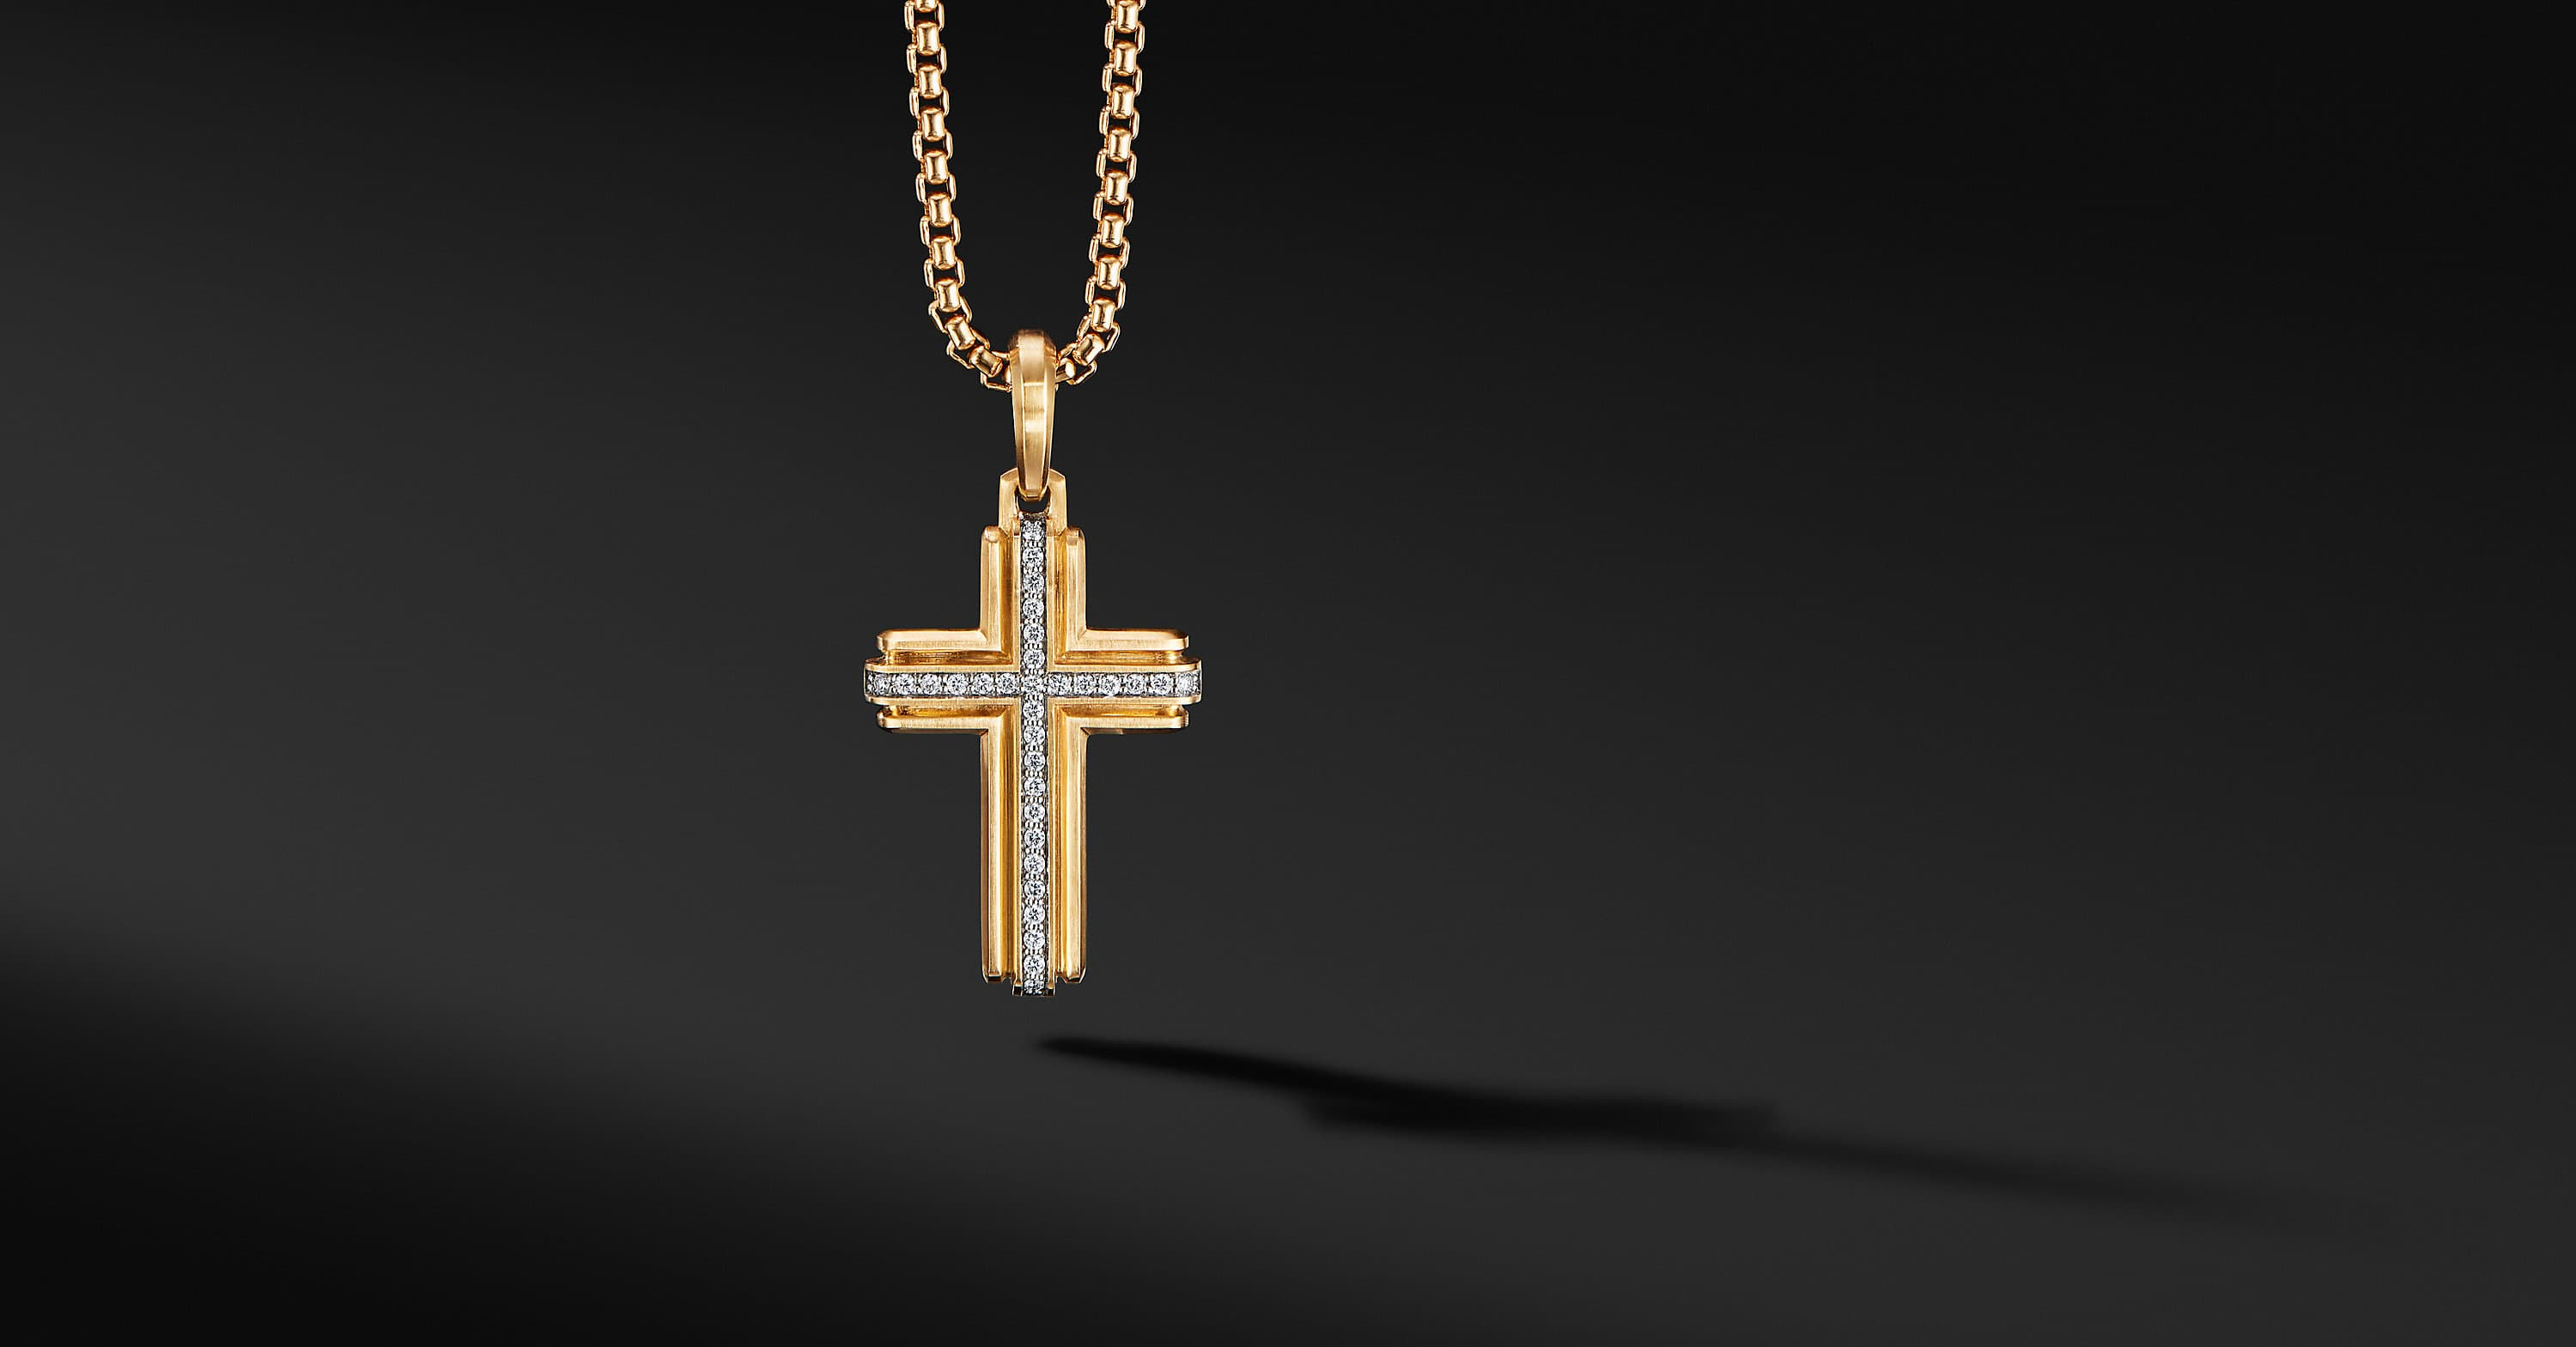 Deco Cross Pendant in 18K Yellow Gold, 34mm